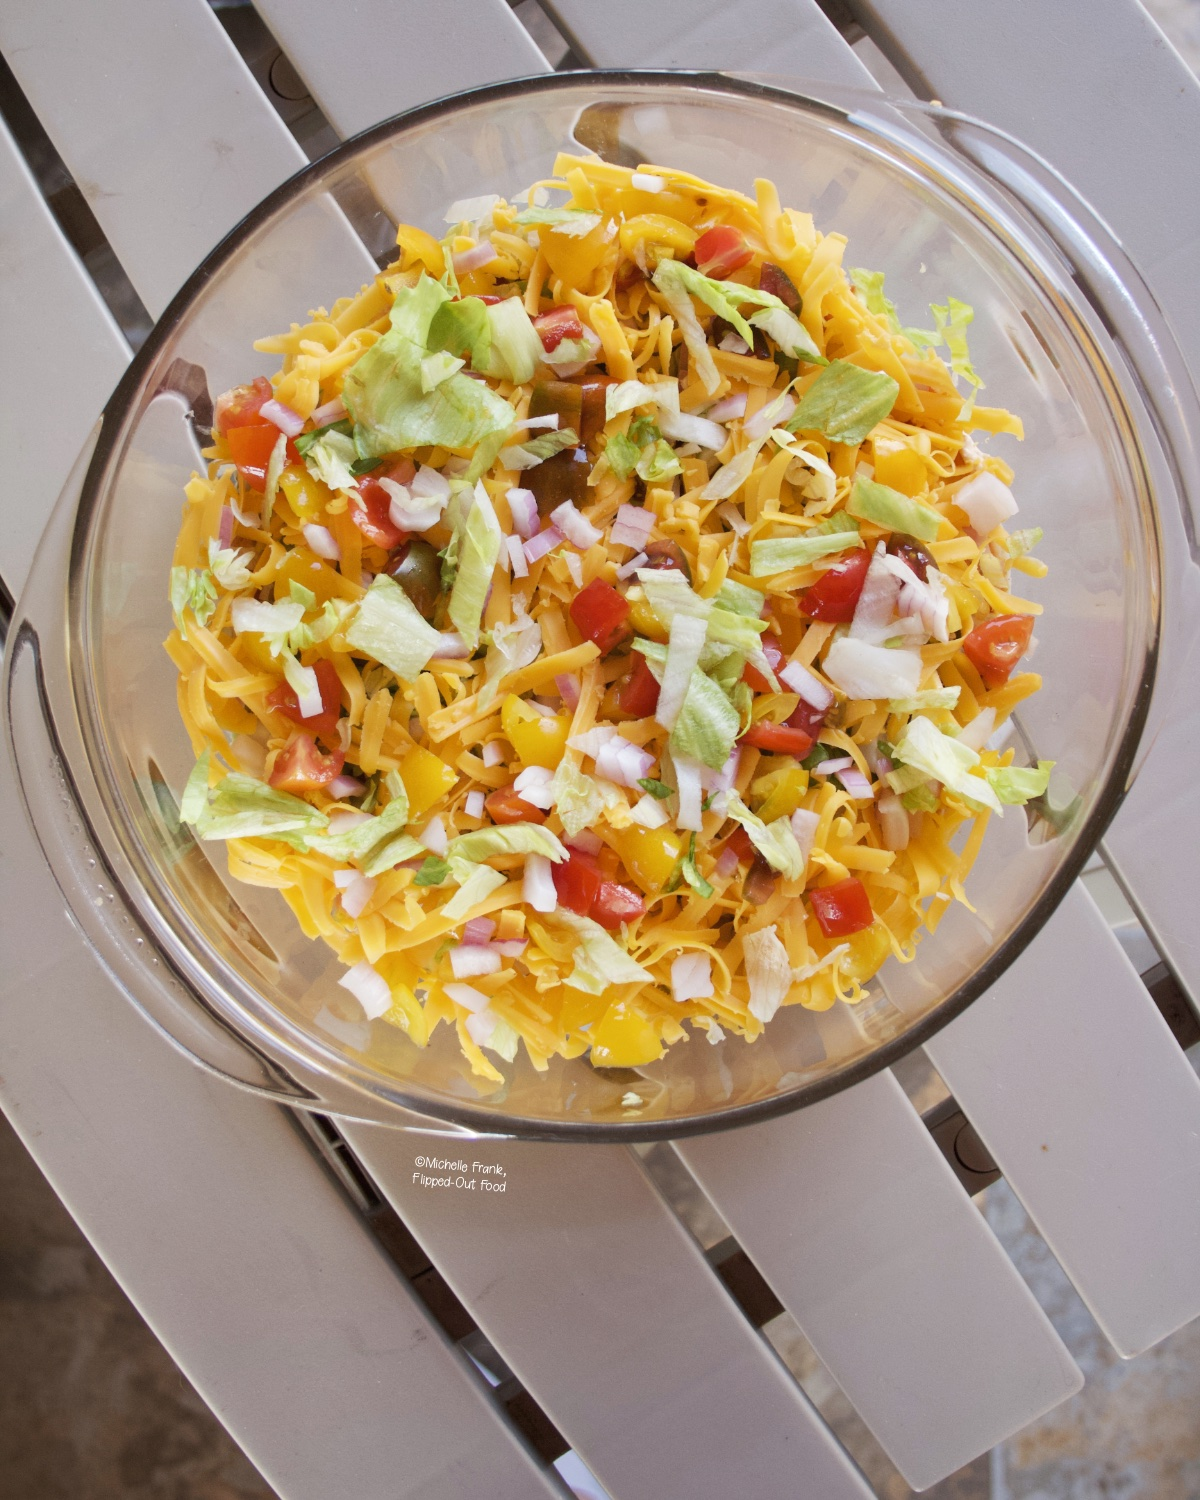 Phil's Taco Dip party appetizer in a clear pyrex serving dish.